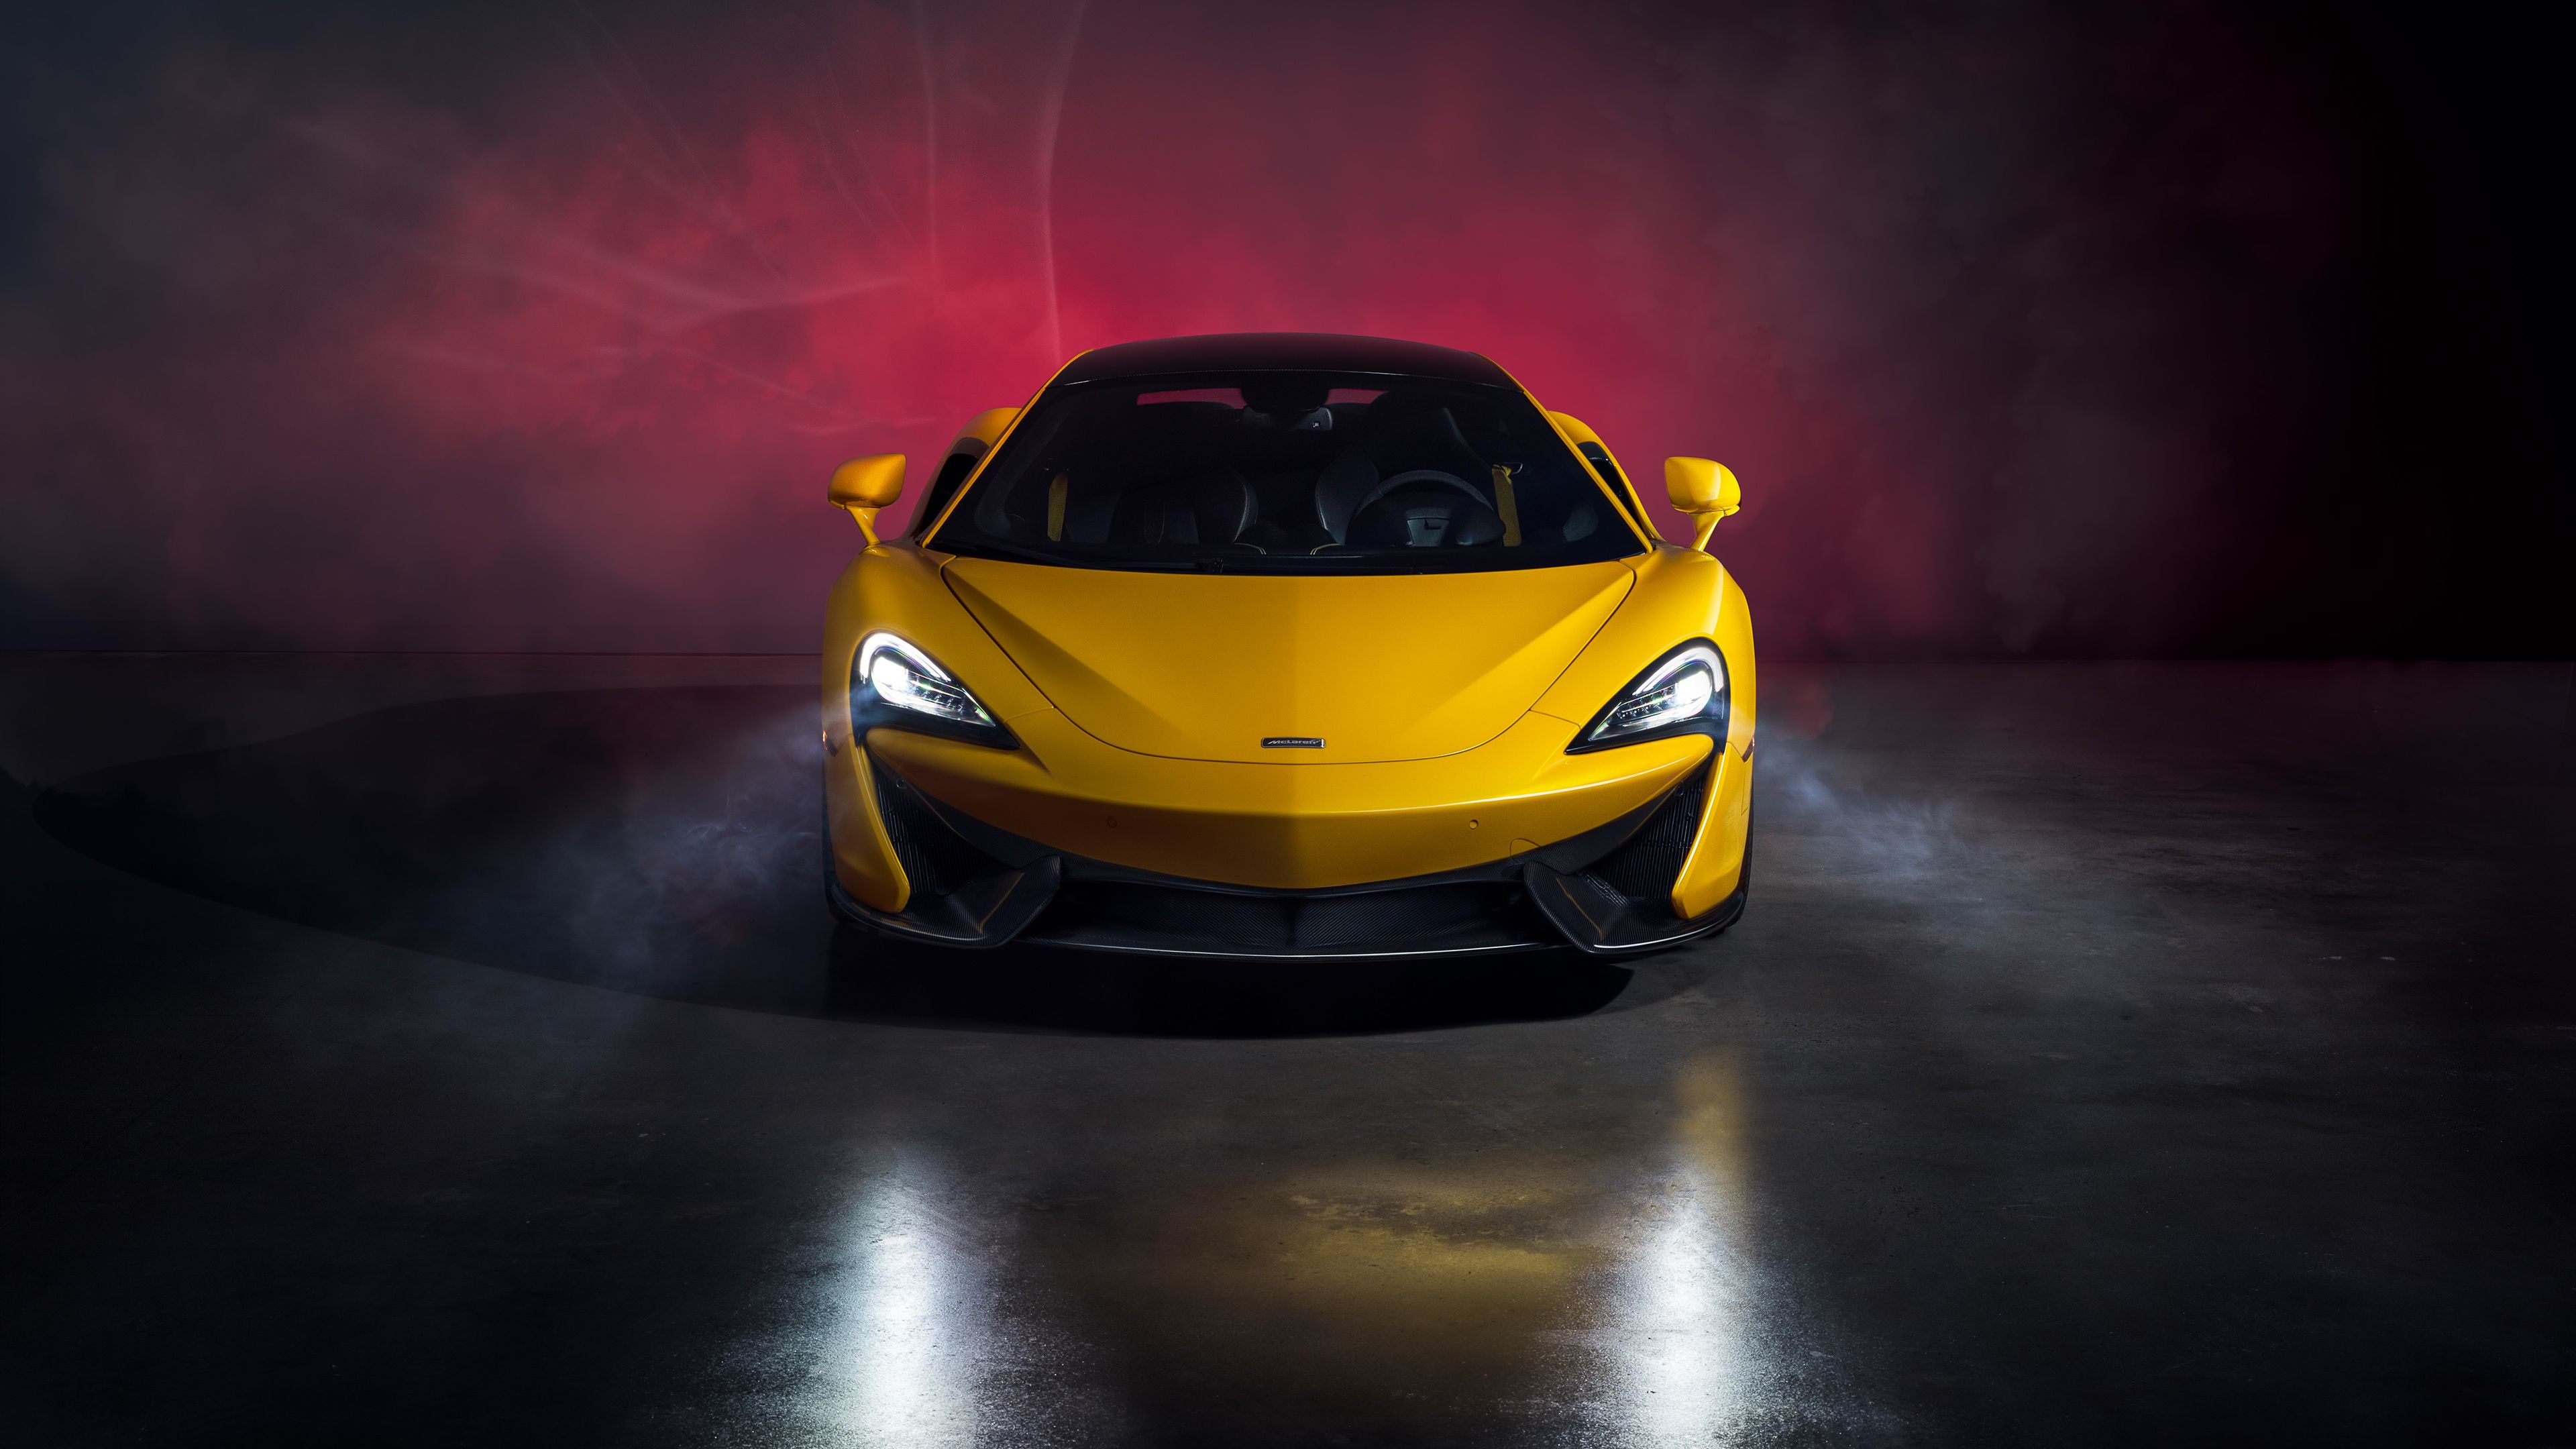 Mclaren 570s Mso 4k Mclaren Wallpapers Mclaren 570s Spider Wallpapers Hd Wallpapers Cars Wallpapers Behance Wallpapers Audi Sports Car Mclaren 570s Mclaren